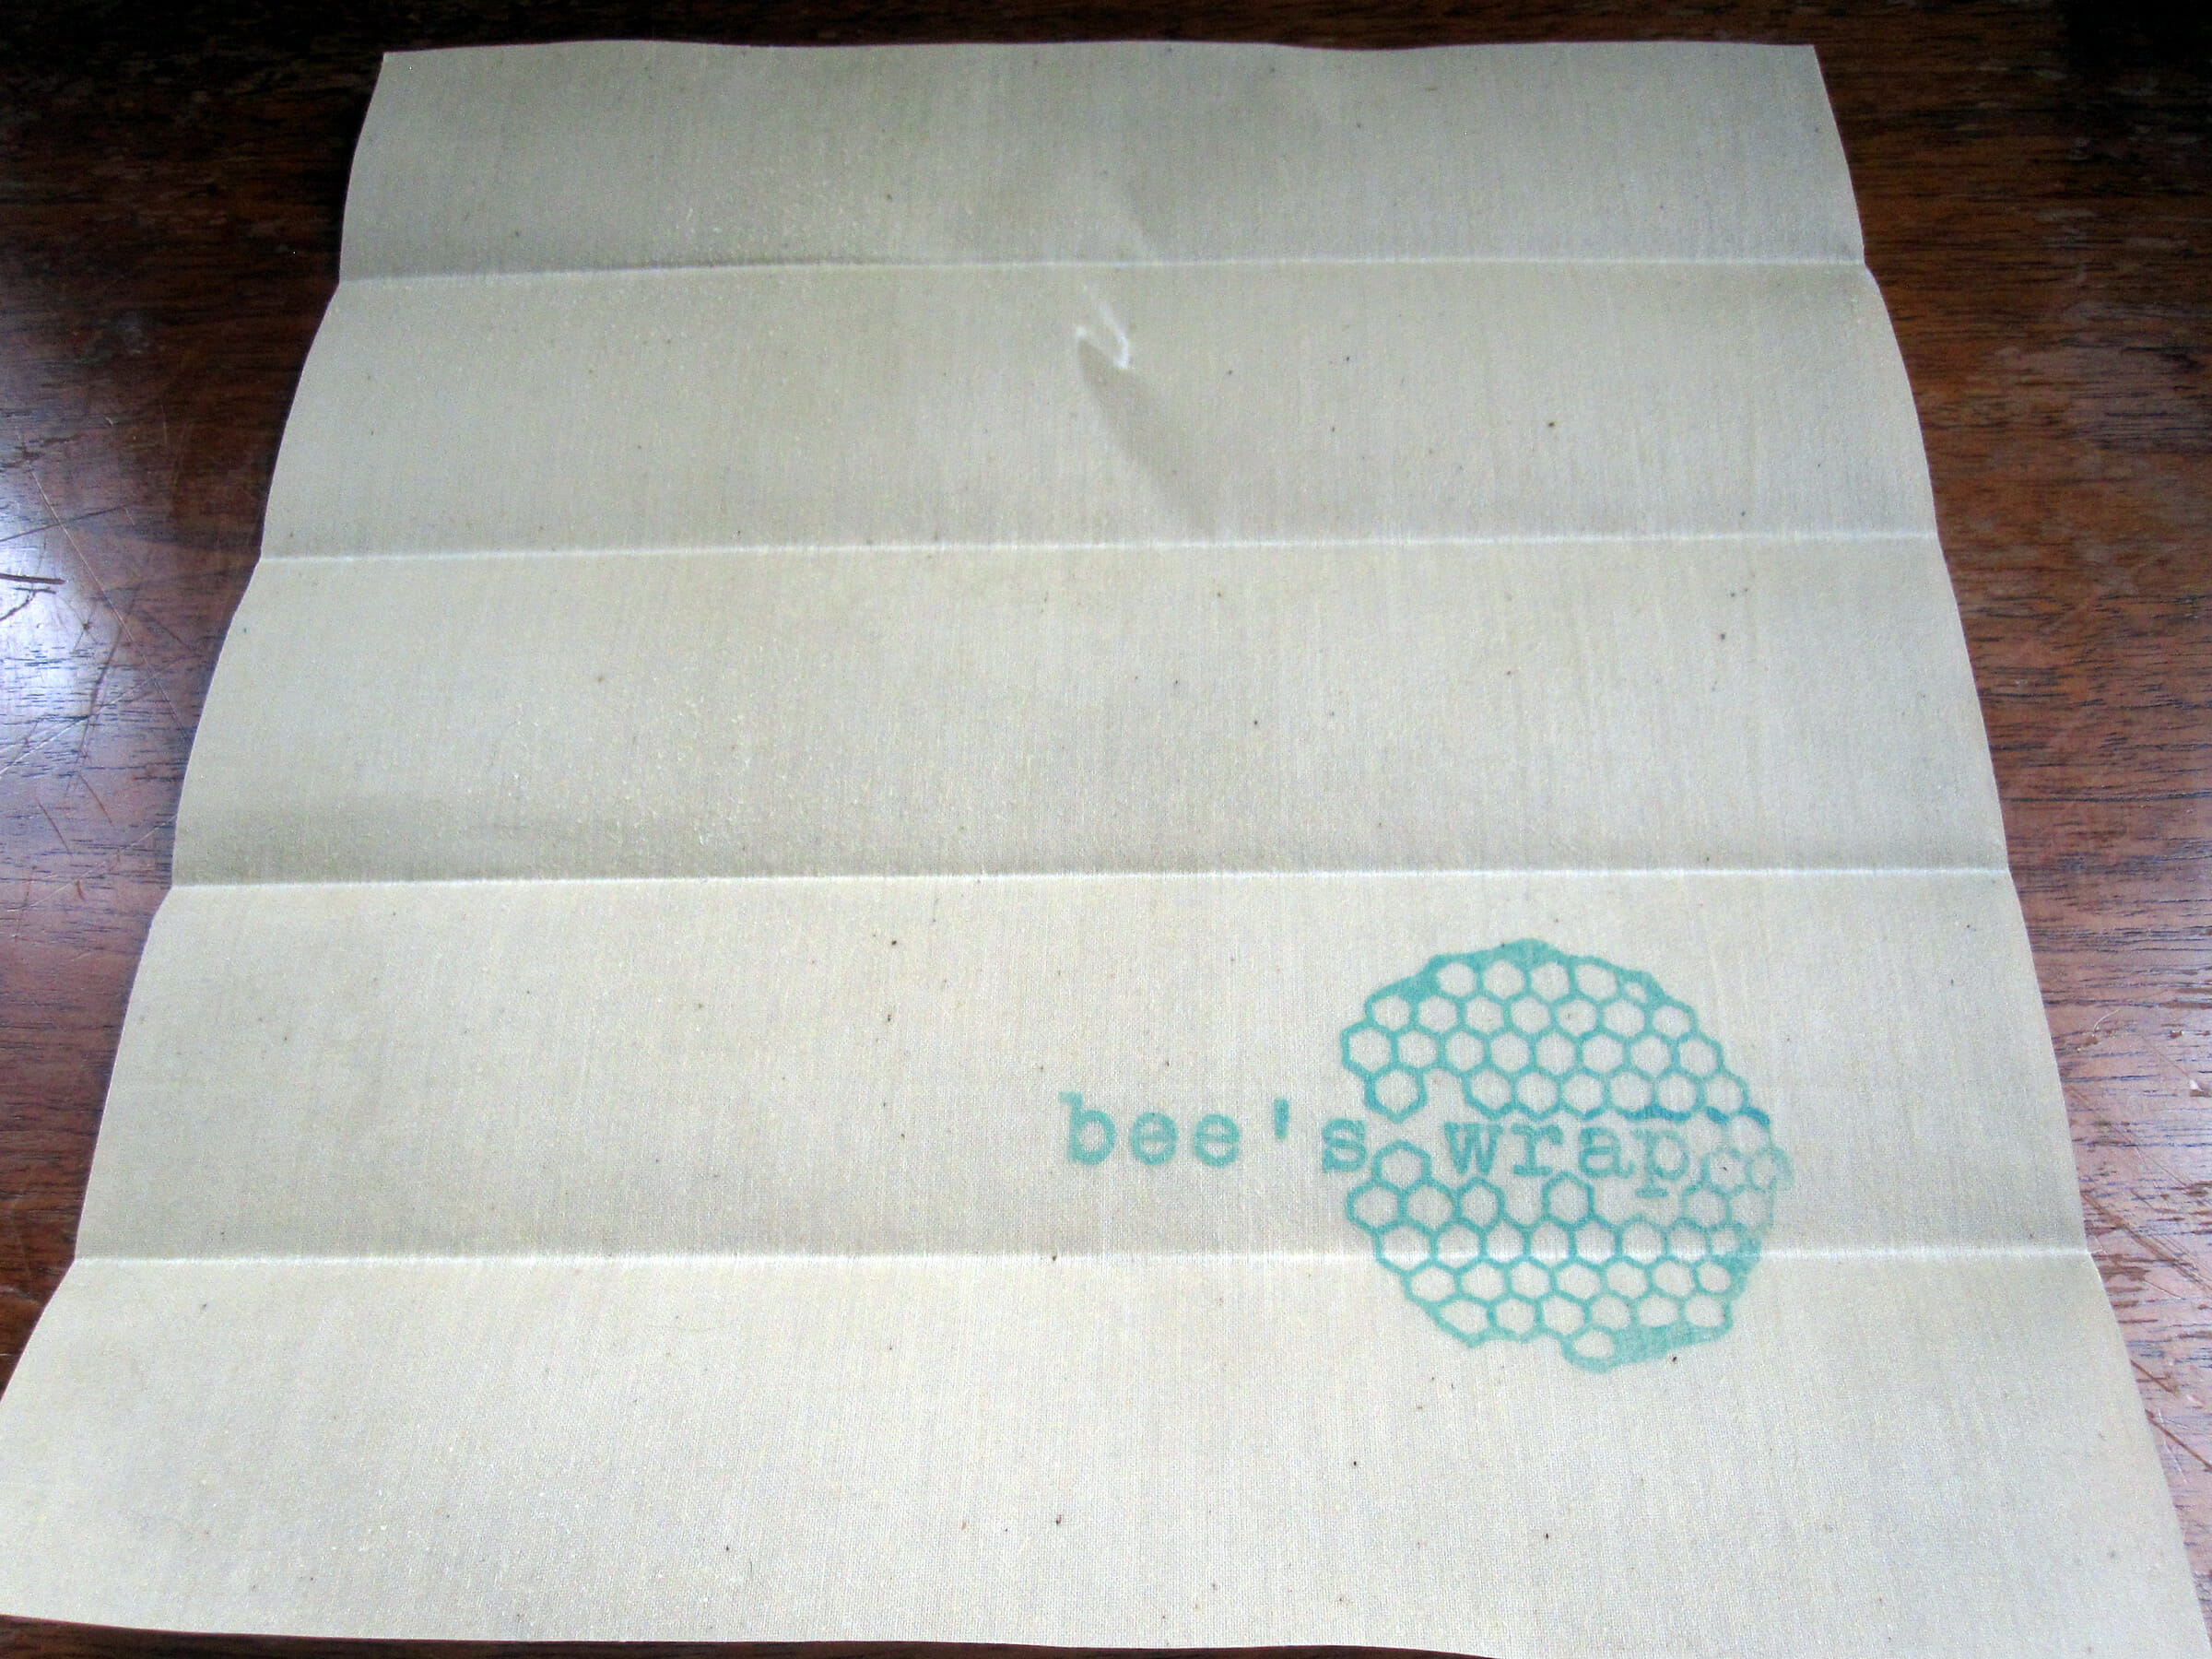 Can Beeswax Cloth Wraps Replace Plastic Cling Wrap? » My Plastic